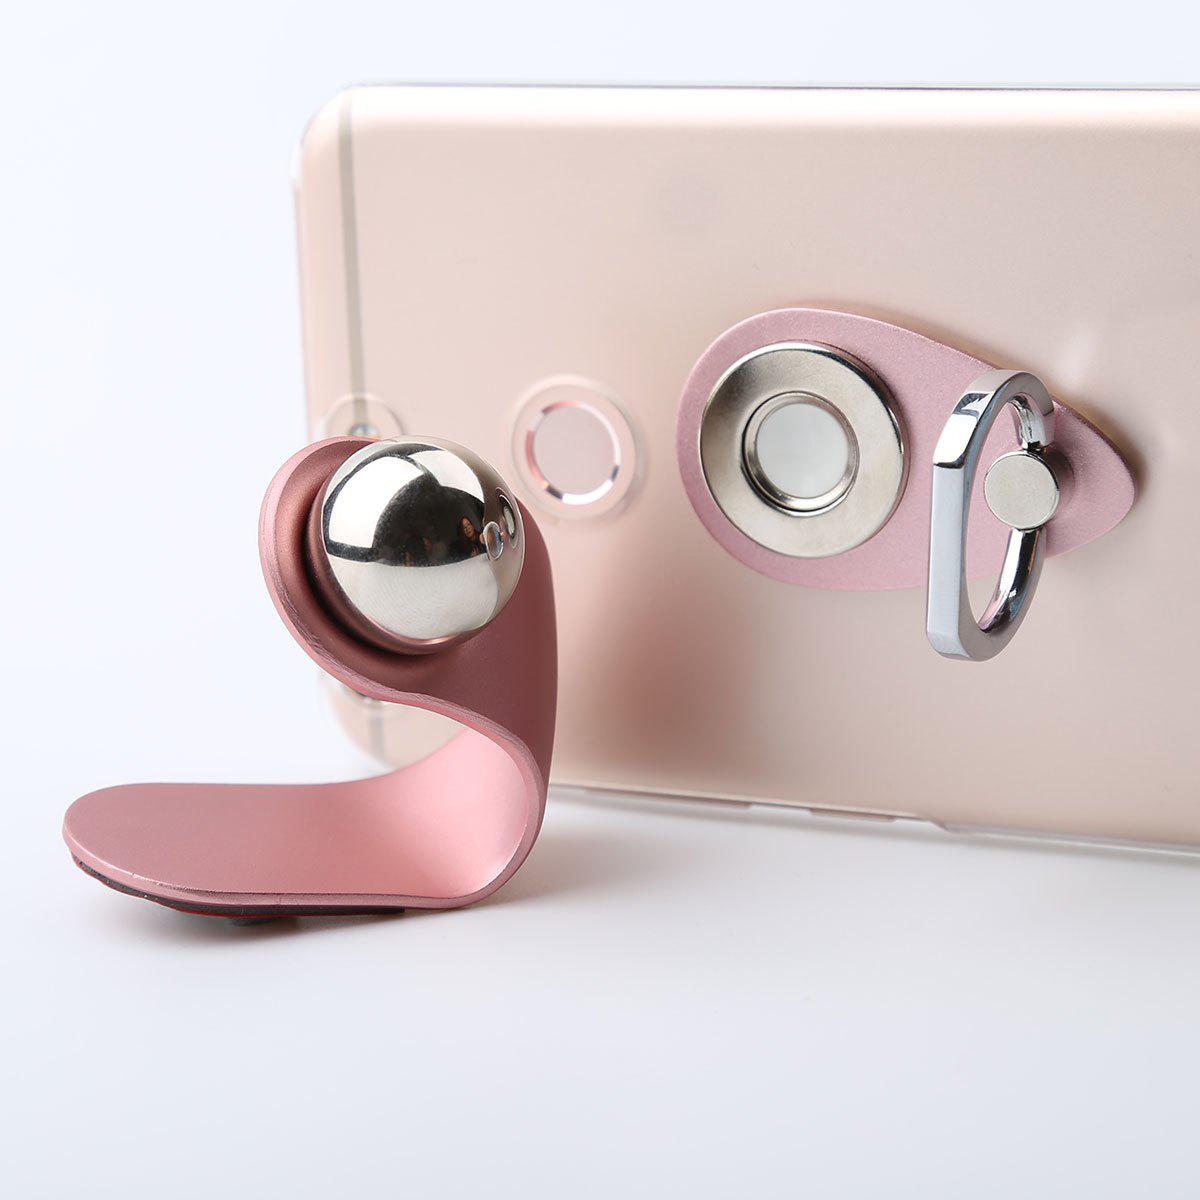 2 in 1 Universal Magnetic Phone Holder Finger Ring - PINK